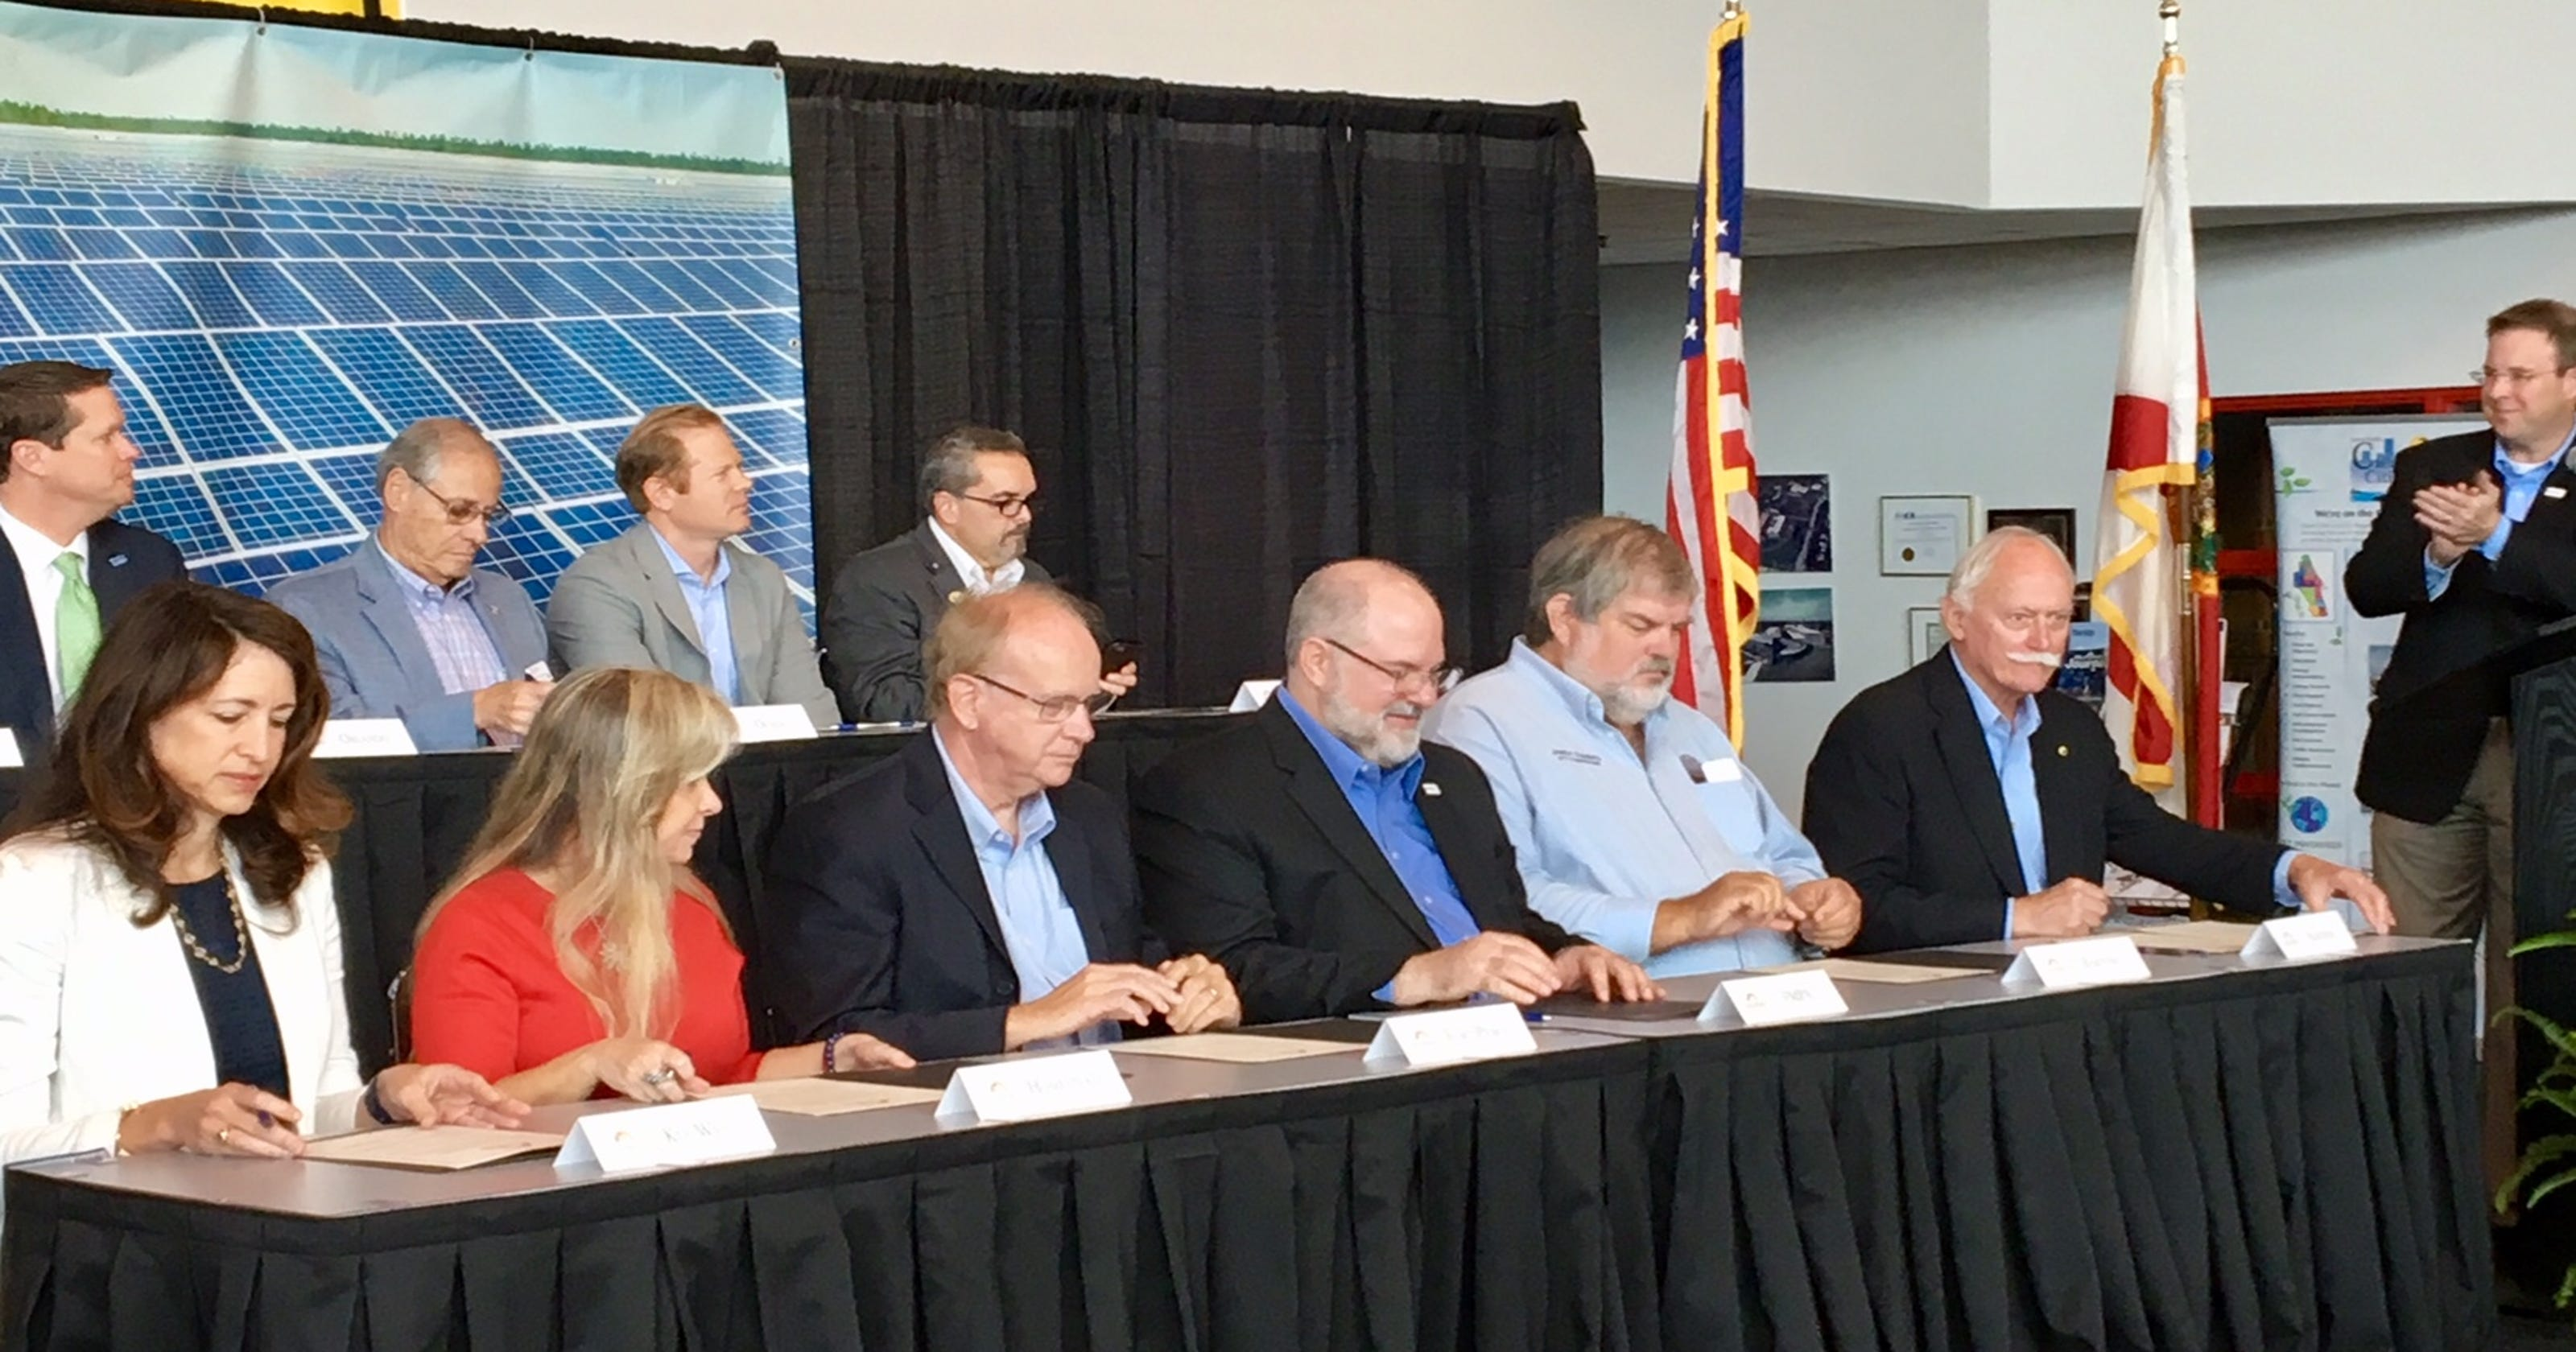 12 municipal utilities to expand solar operations in Florida